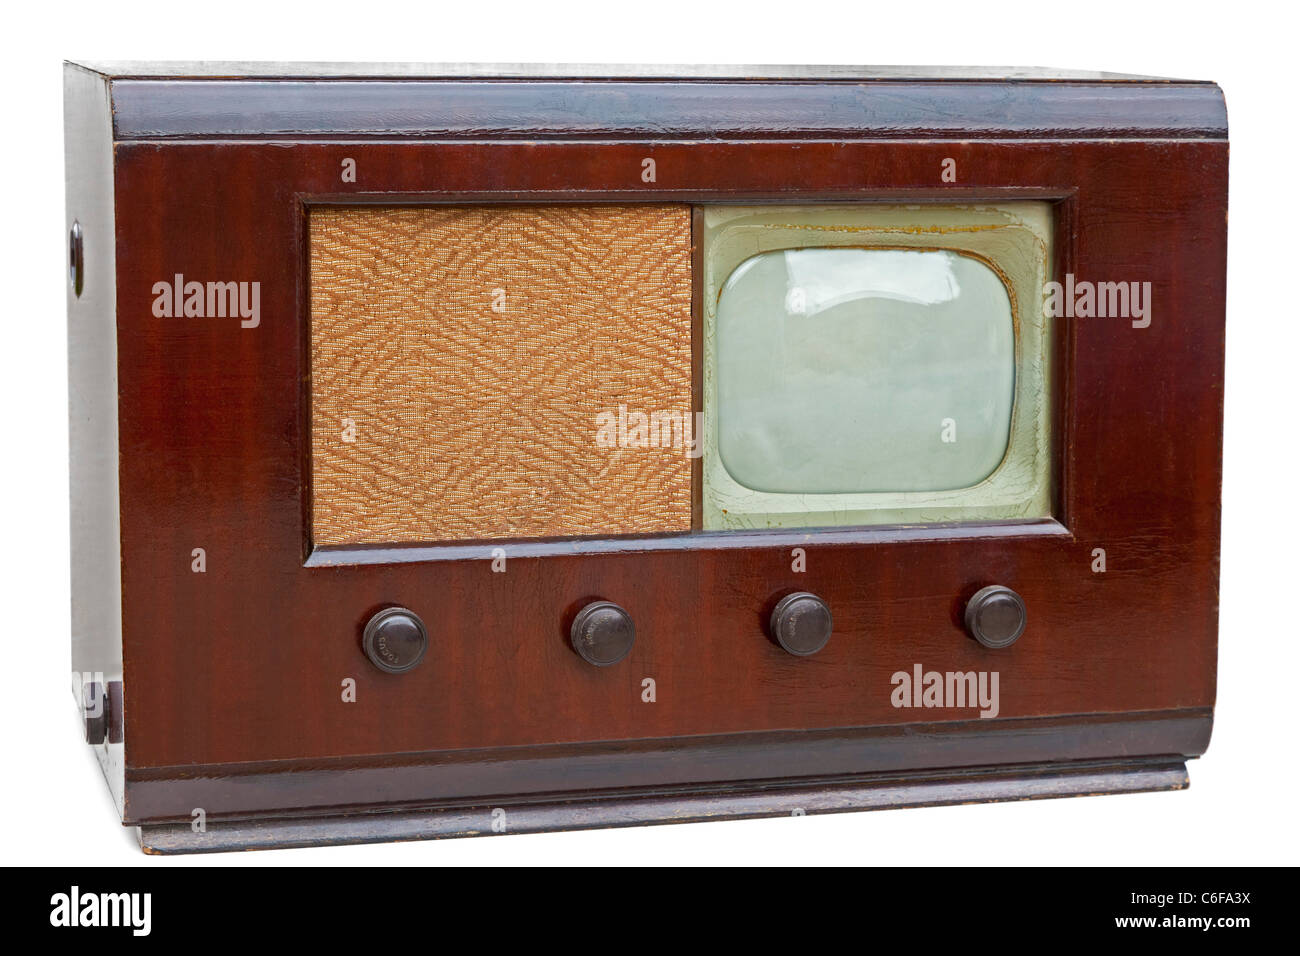 Vintage Philips model 383A television set from 1948 with 9 inch screen. JMH5164 - Stock Image